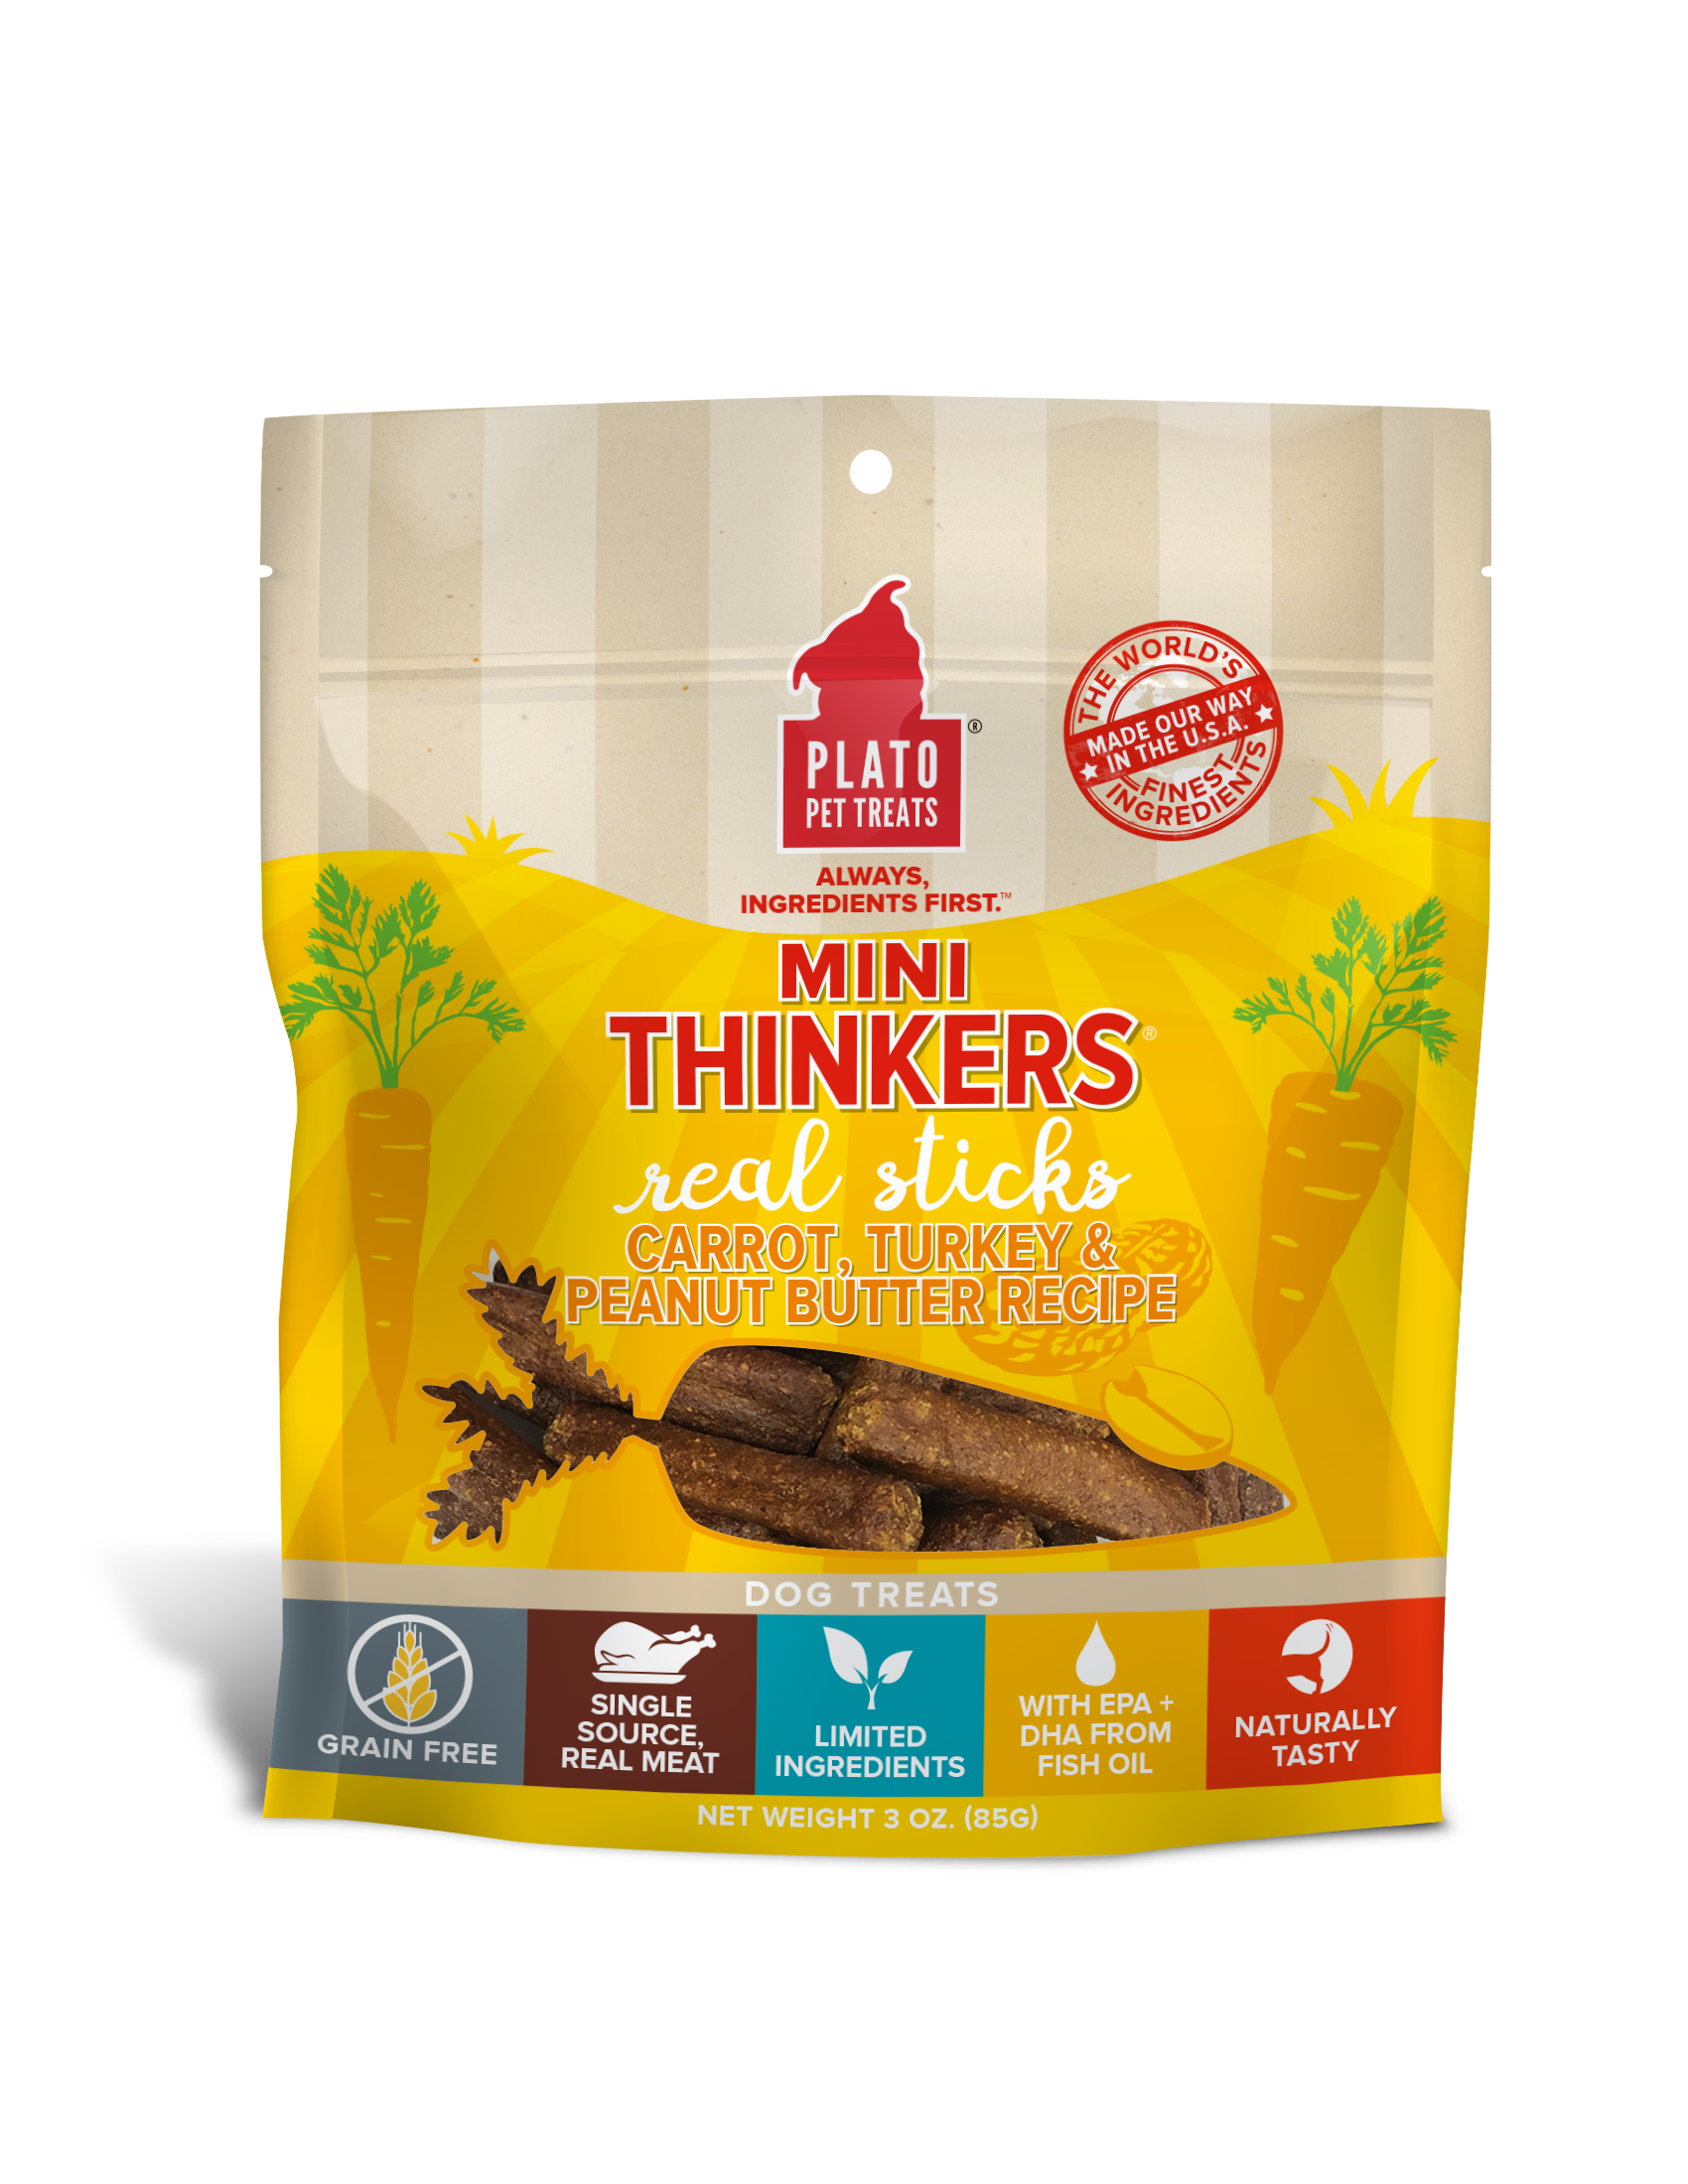 Plato Mini Thinkers Carrot, Turkey & Peanut Butter Recipe Grain-Free Dog Treats, 3-oz